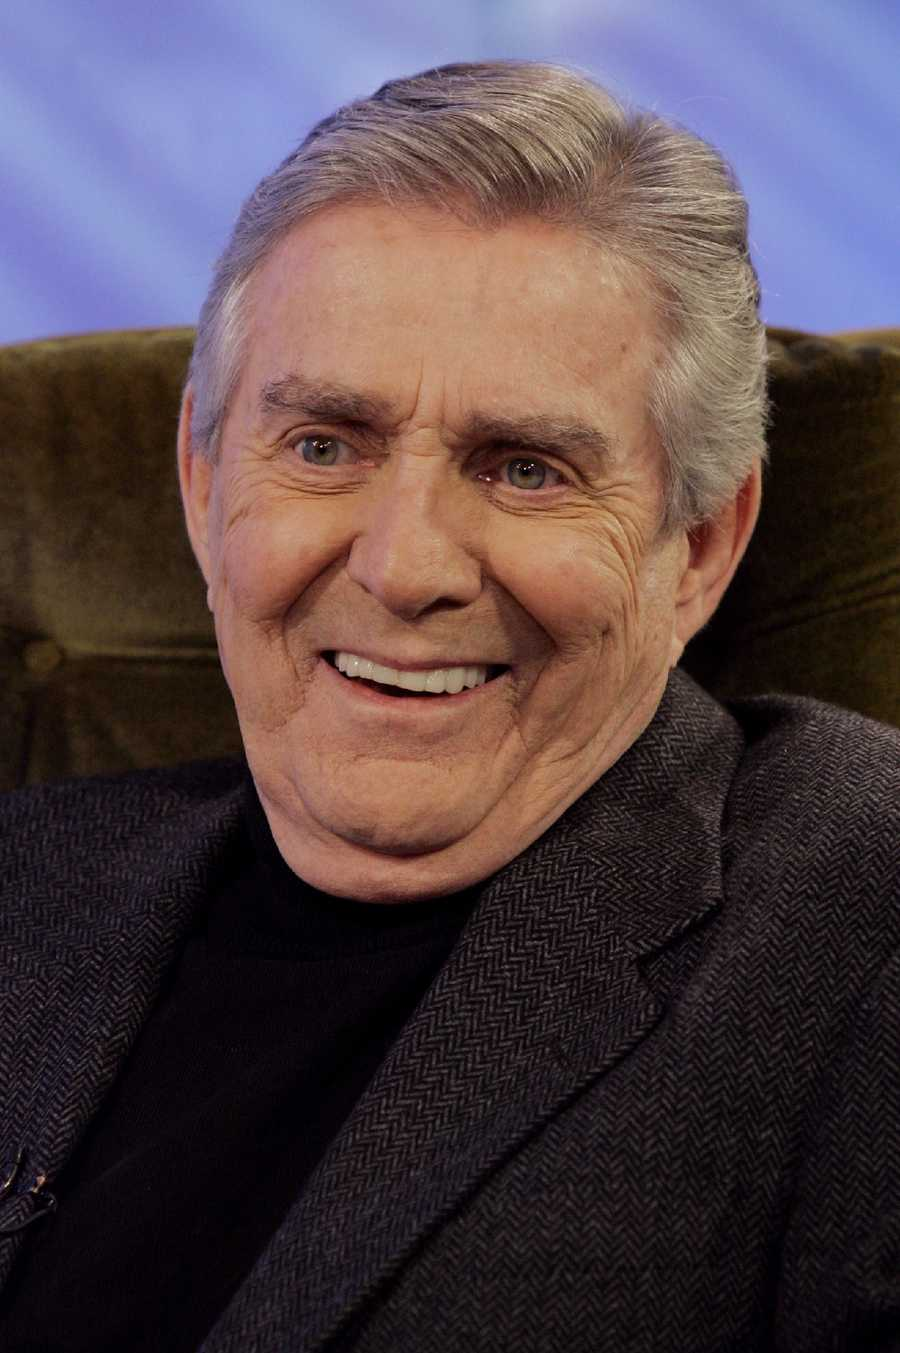 """Pat Harrington Jr., the actor who played building superintendent Dwayne Schneider on """"One Day at a Time,"""" died Jan. 6."""